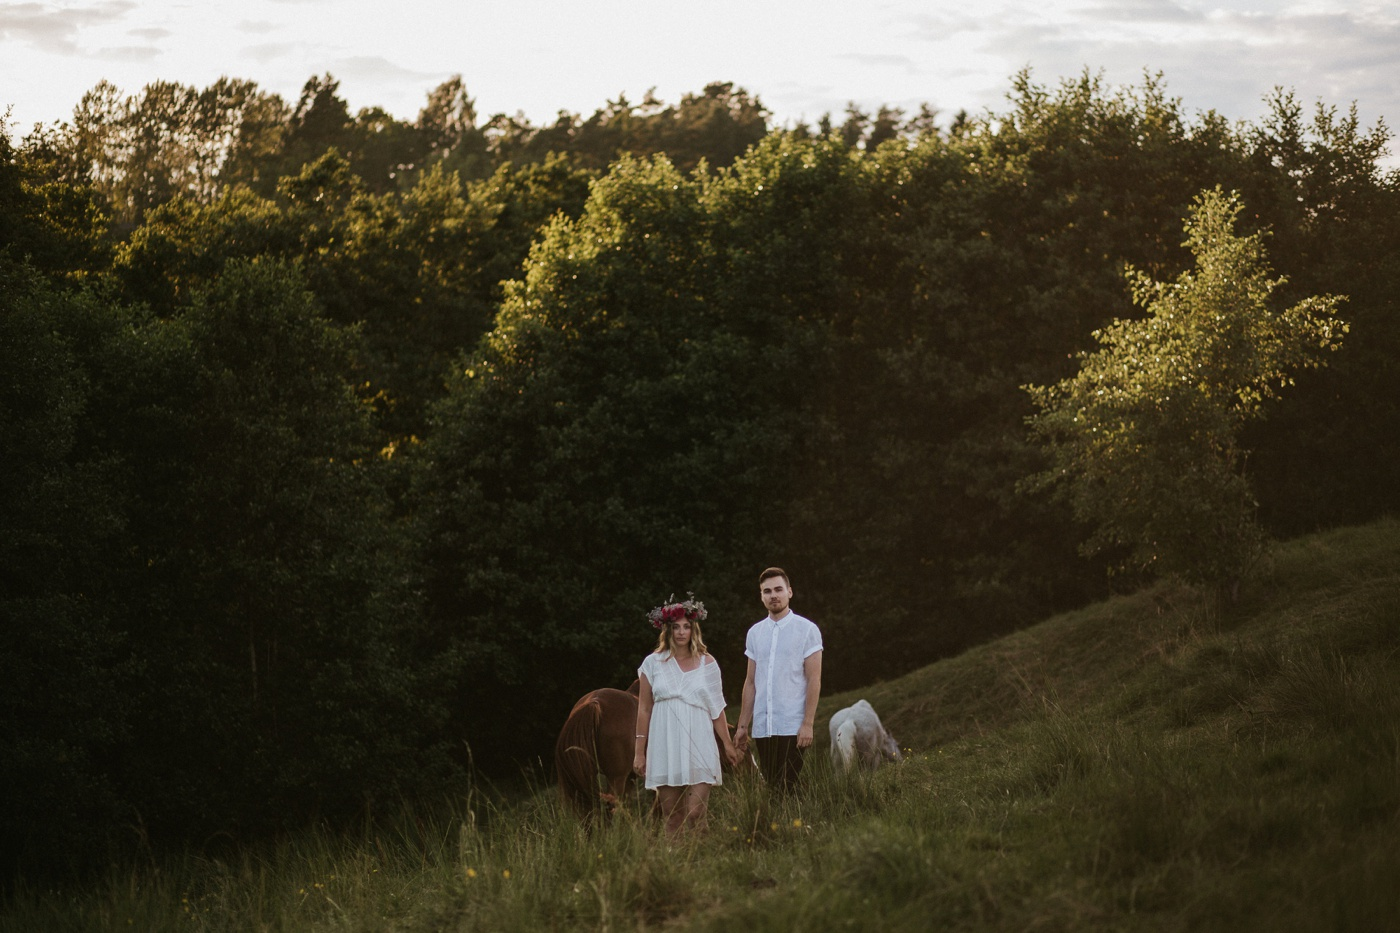 natalie-wictor_swedish-relaxed-candid-quirky-fun-engagement-session_14